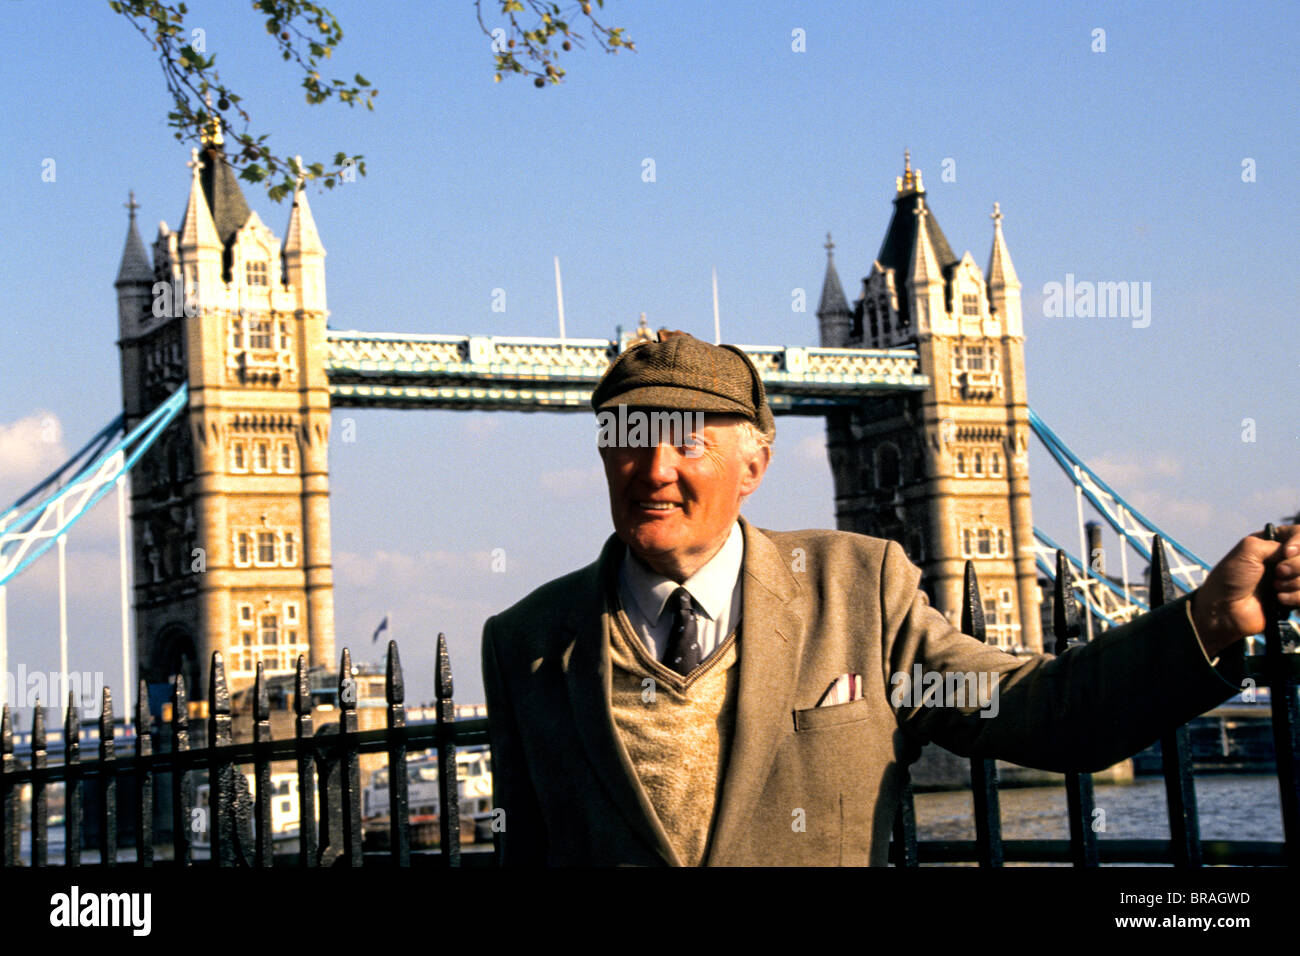 Stately Englishman in front of the famous Tower Bridge in London England - Stock Image